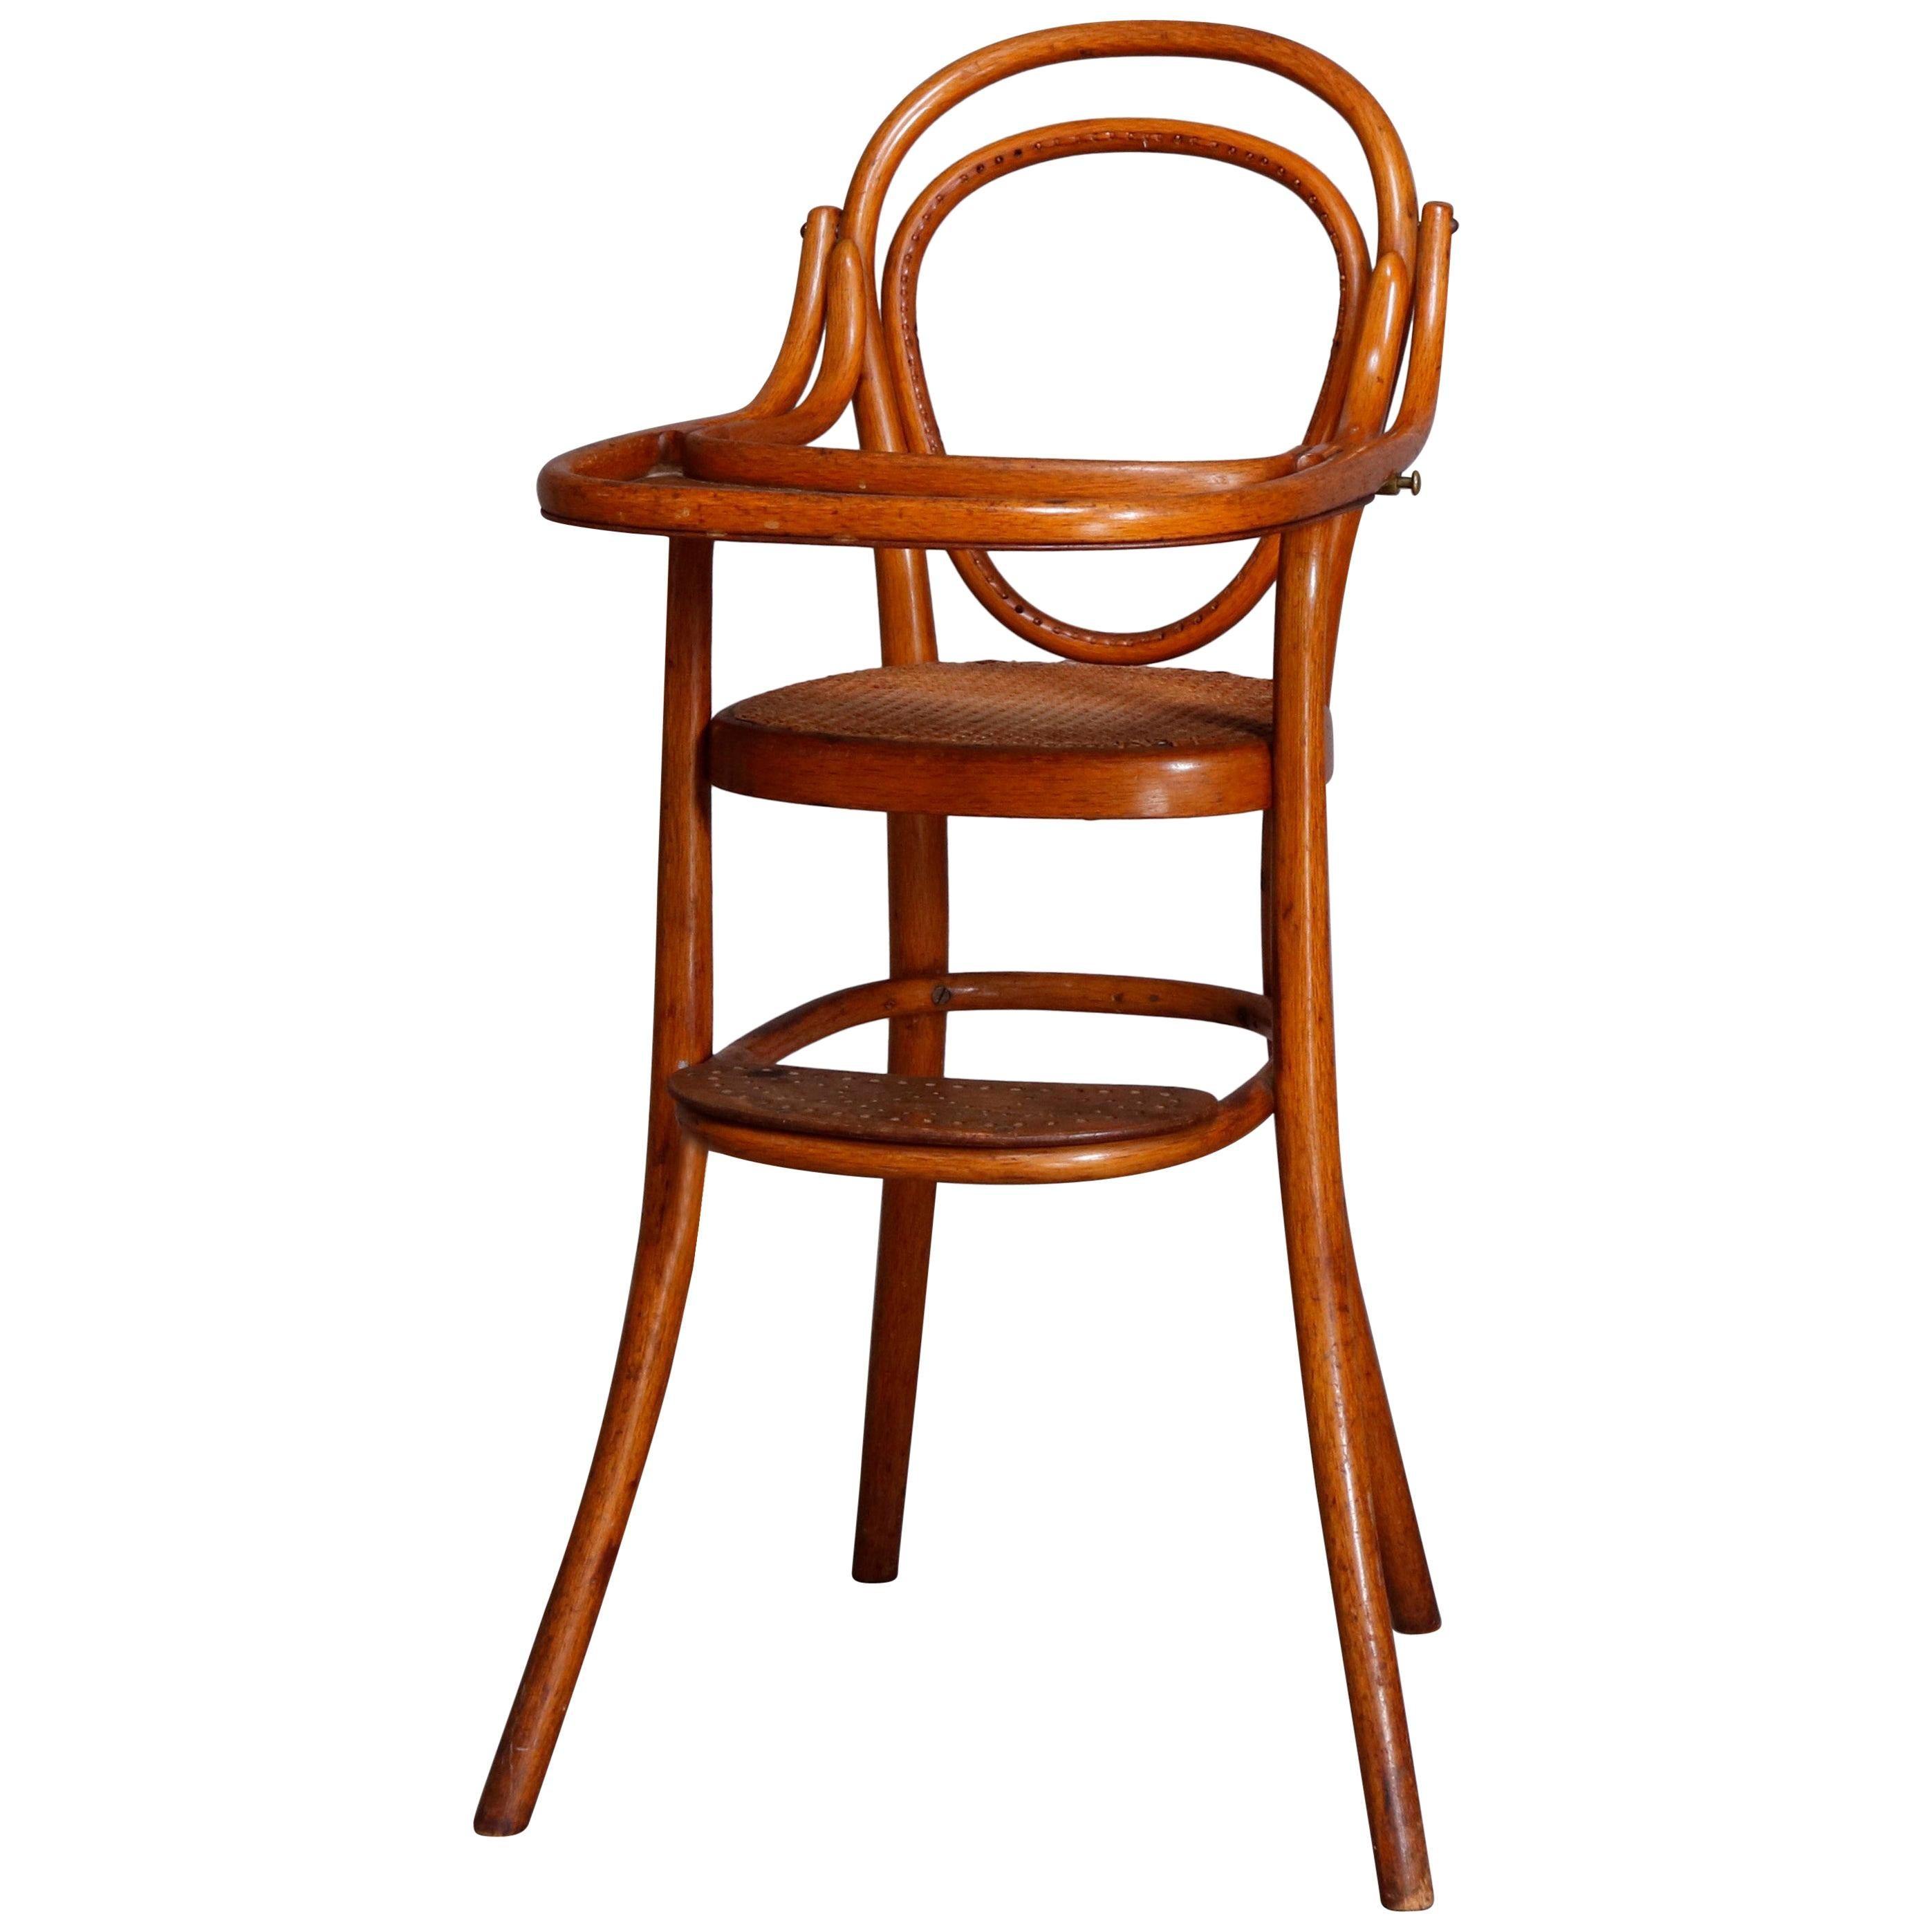 Antique German Bentwood & Cane Child's High Chair by Michael Thonet 19th Century